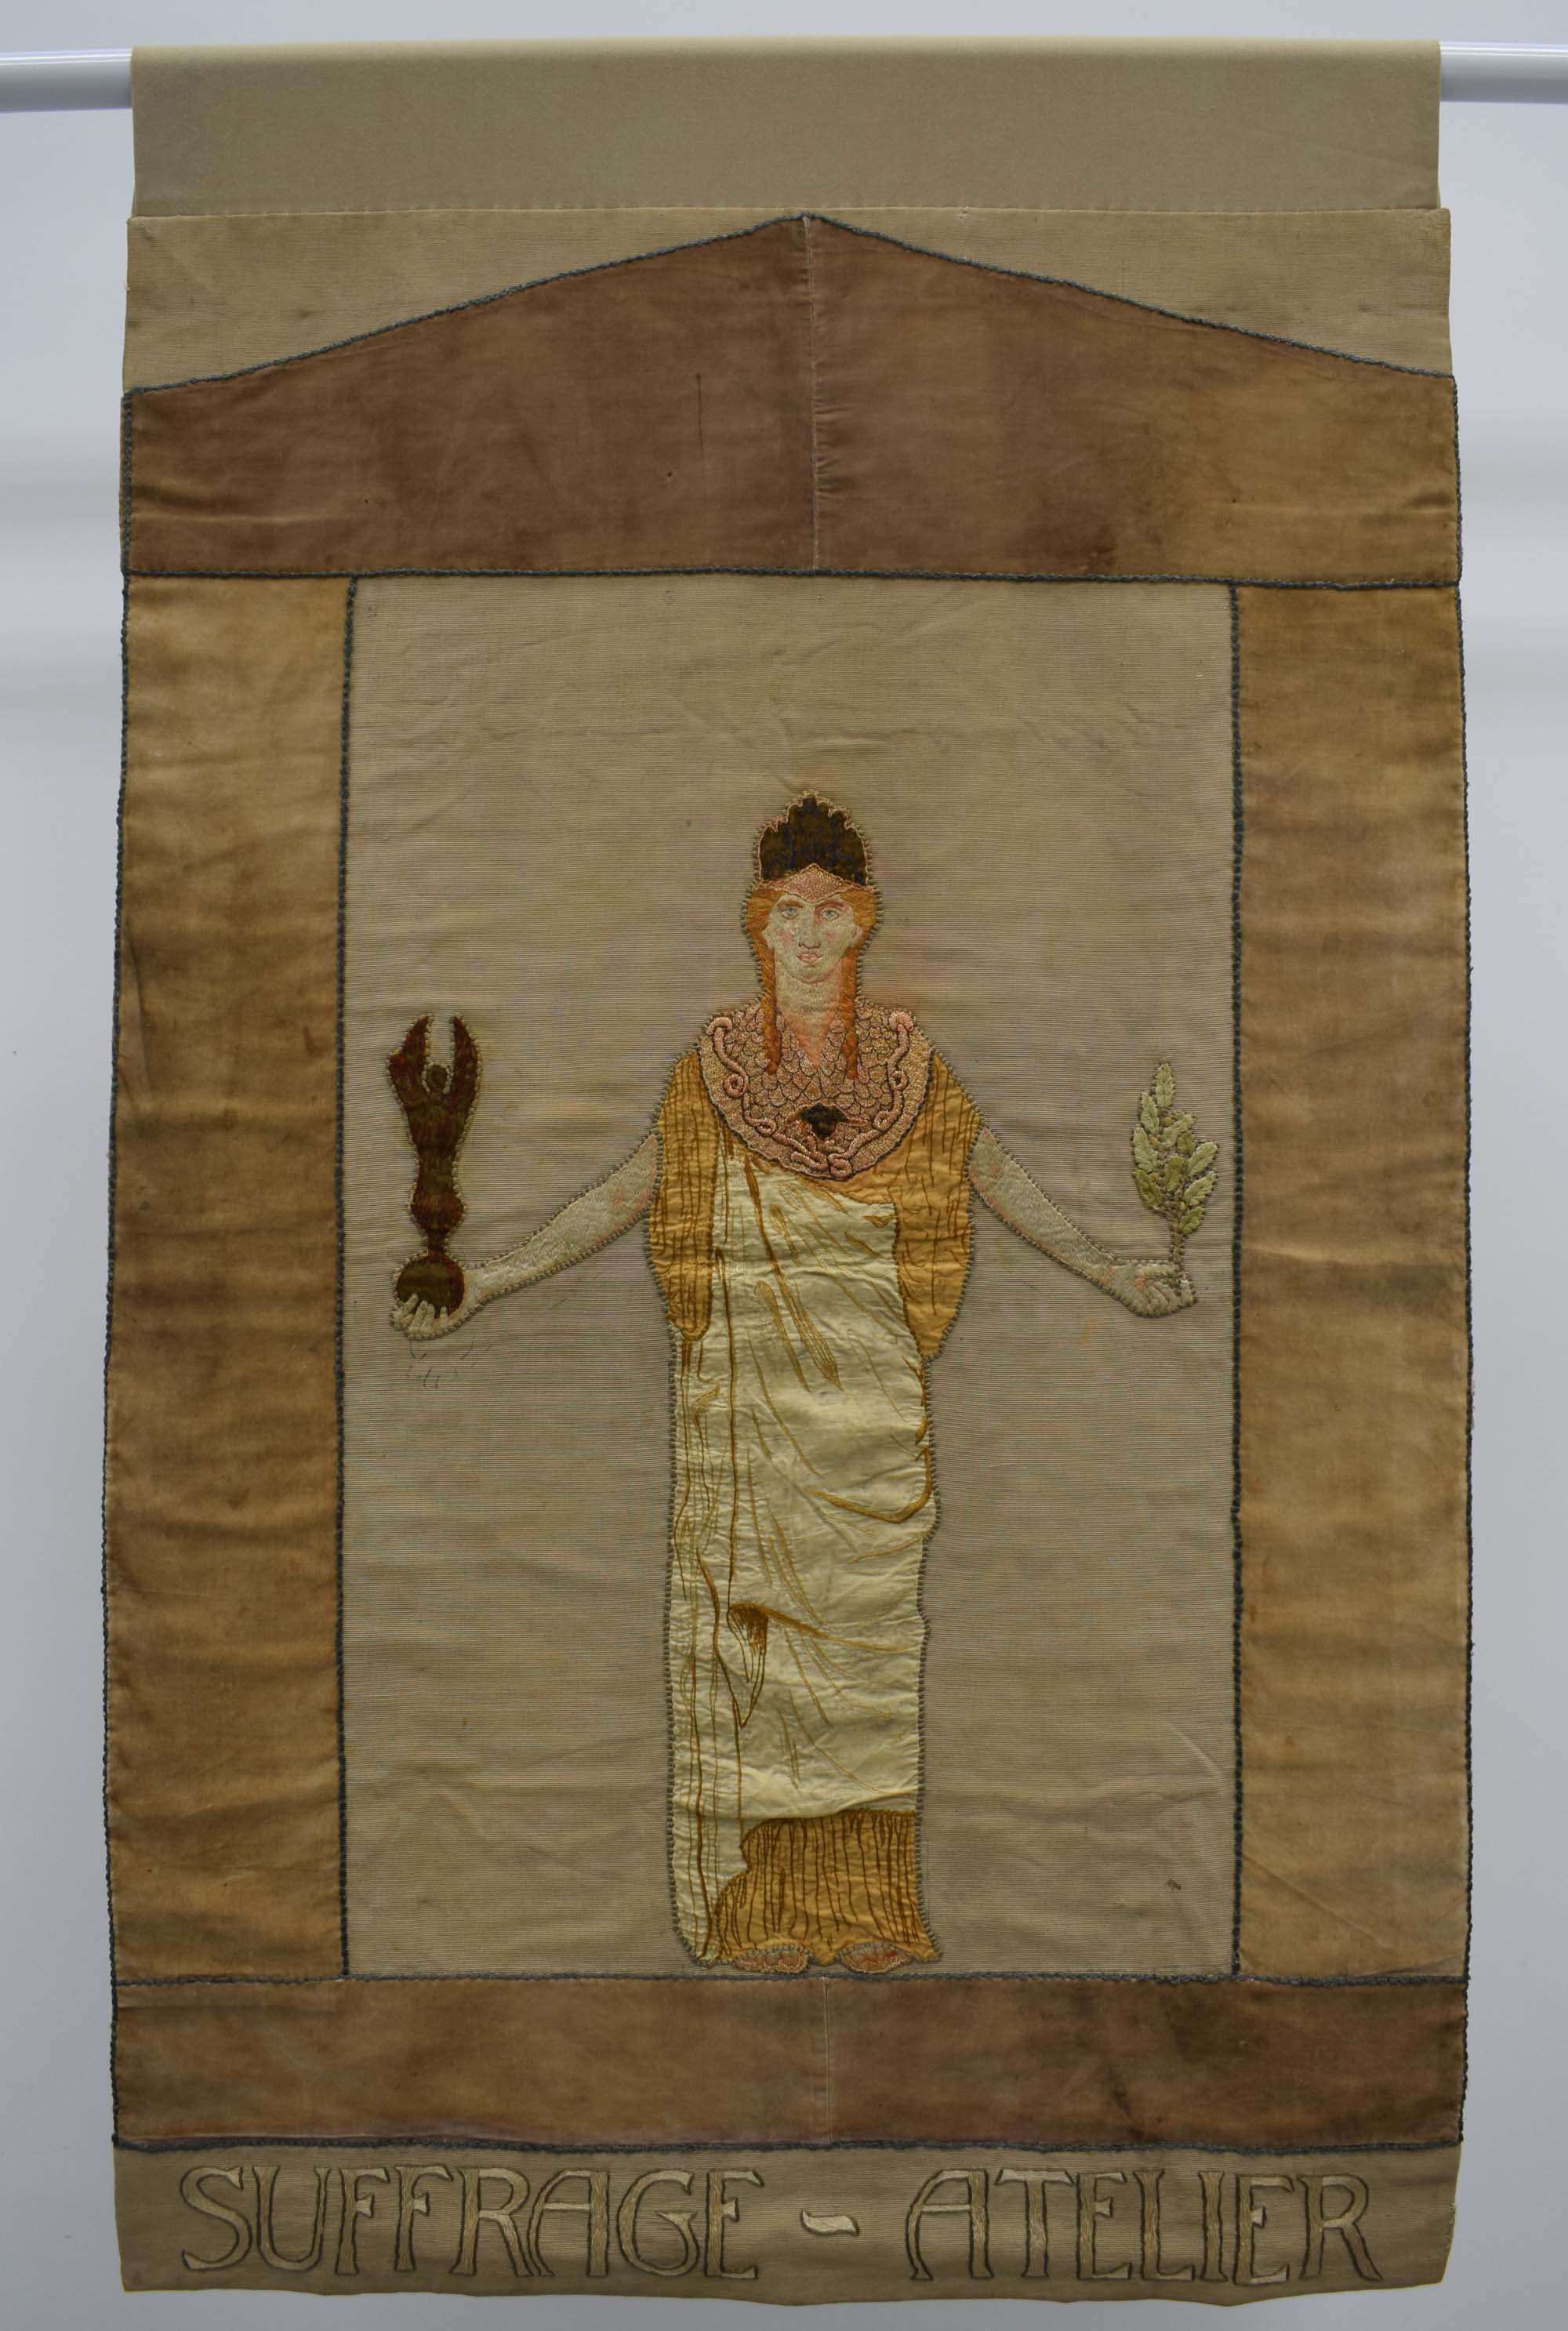 Suffrage Atelier banner iwht a central female art deco style figure holding a torch